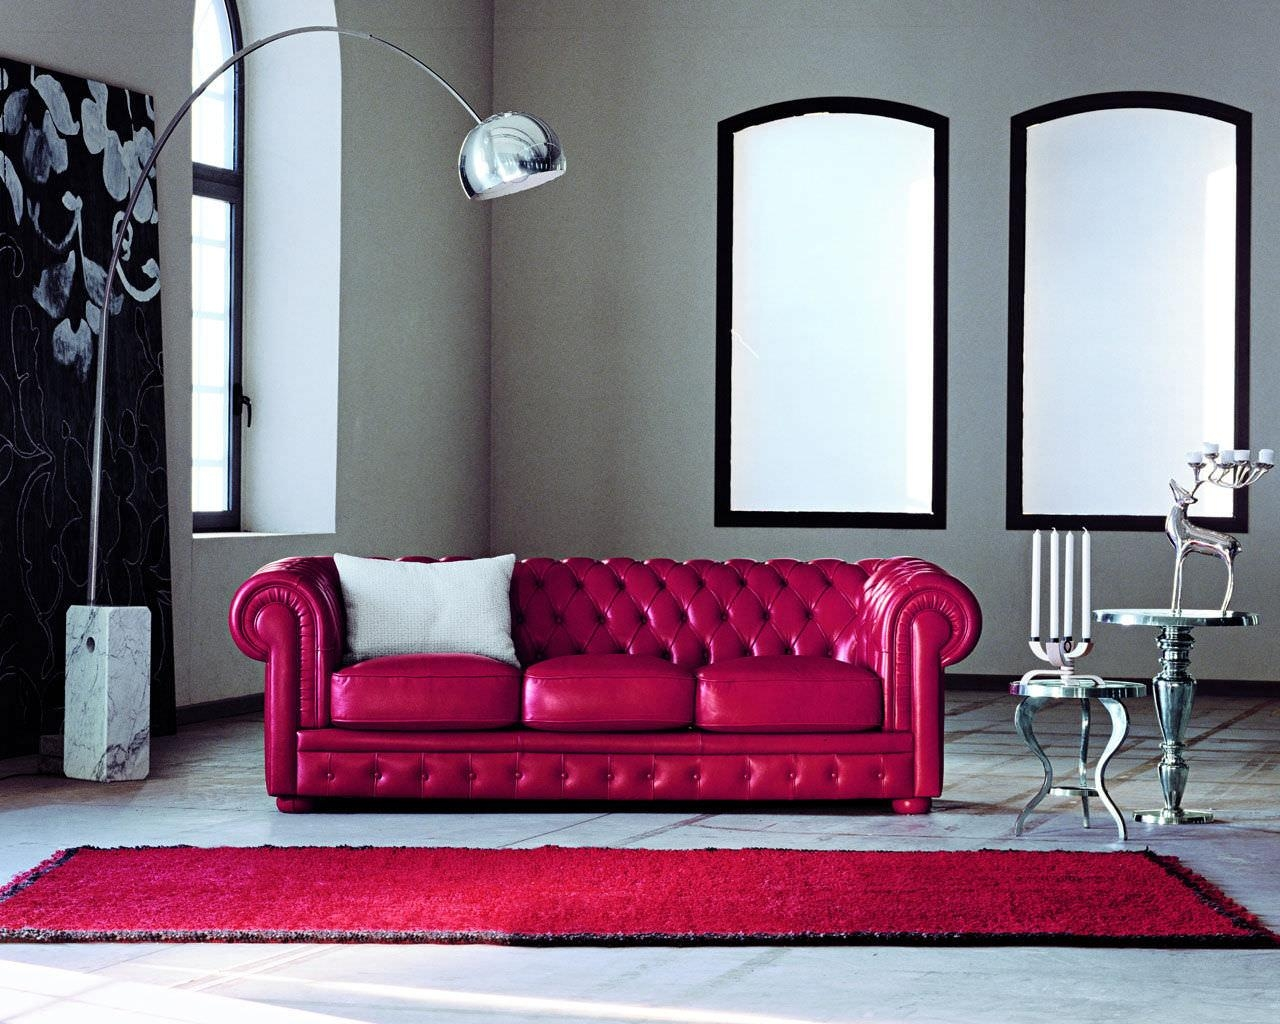 Chesterfield Sofa / Leather / 3 Seater / Red – Alioth – Doimo Sofas With Regard To Red Chesterfield Sofas (View 11 of 20)